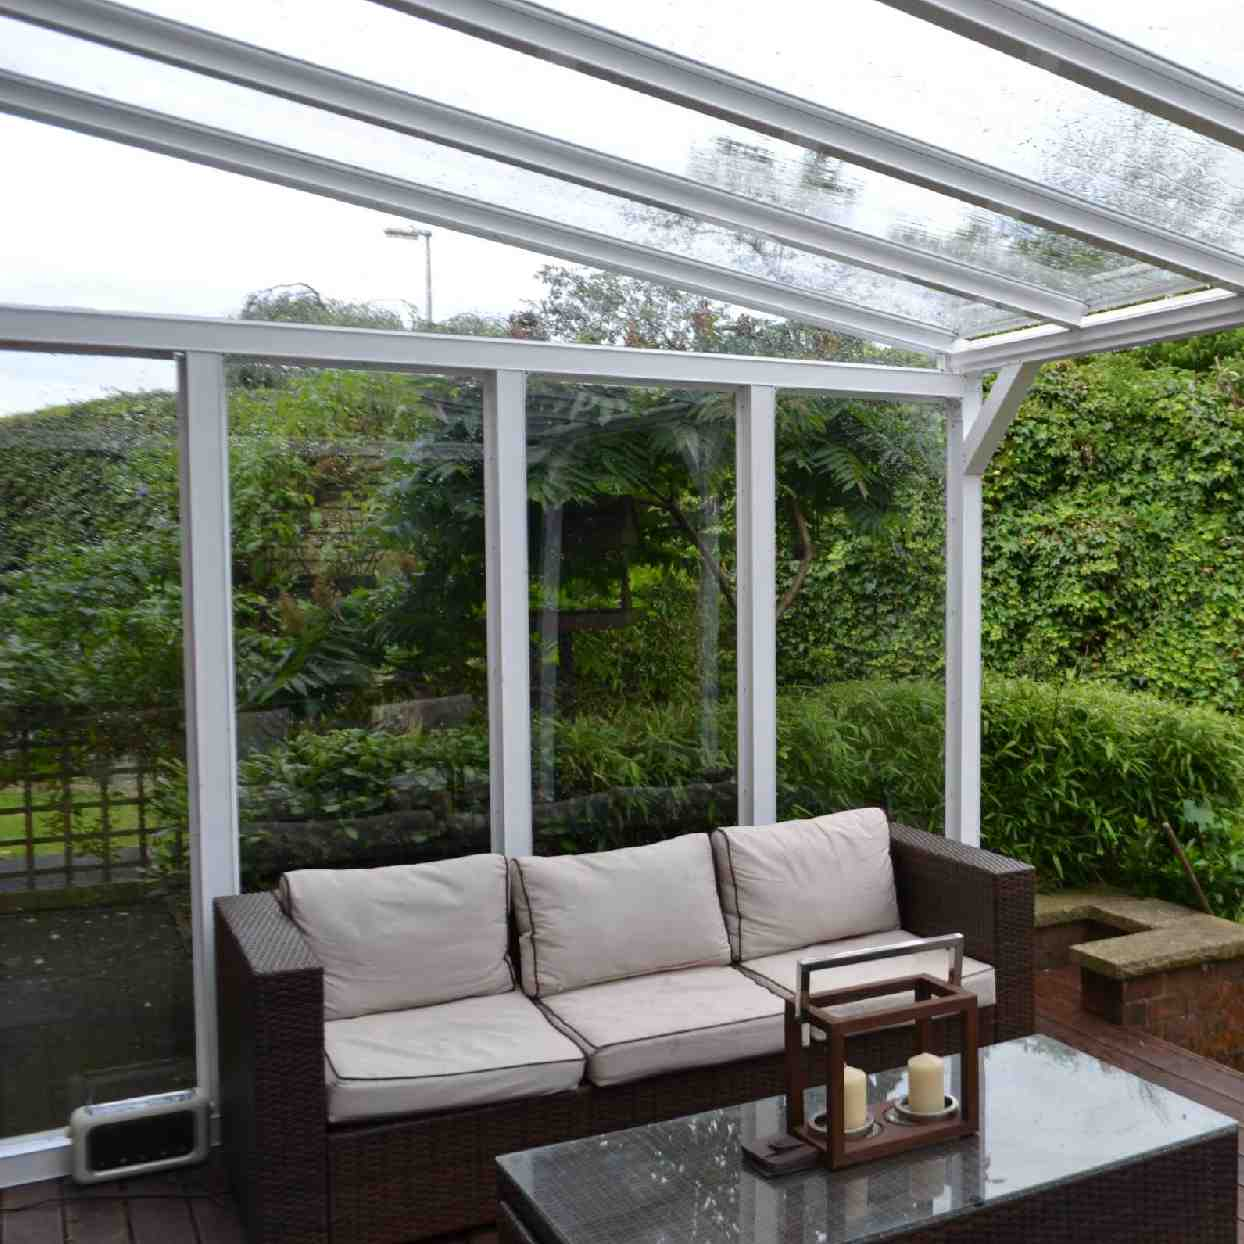 Buy Omega Verandah with 16mm Polycarbonate Glazing - 2.8m (W) x 4.0m(P), (2) Supporting Posts online today